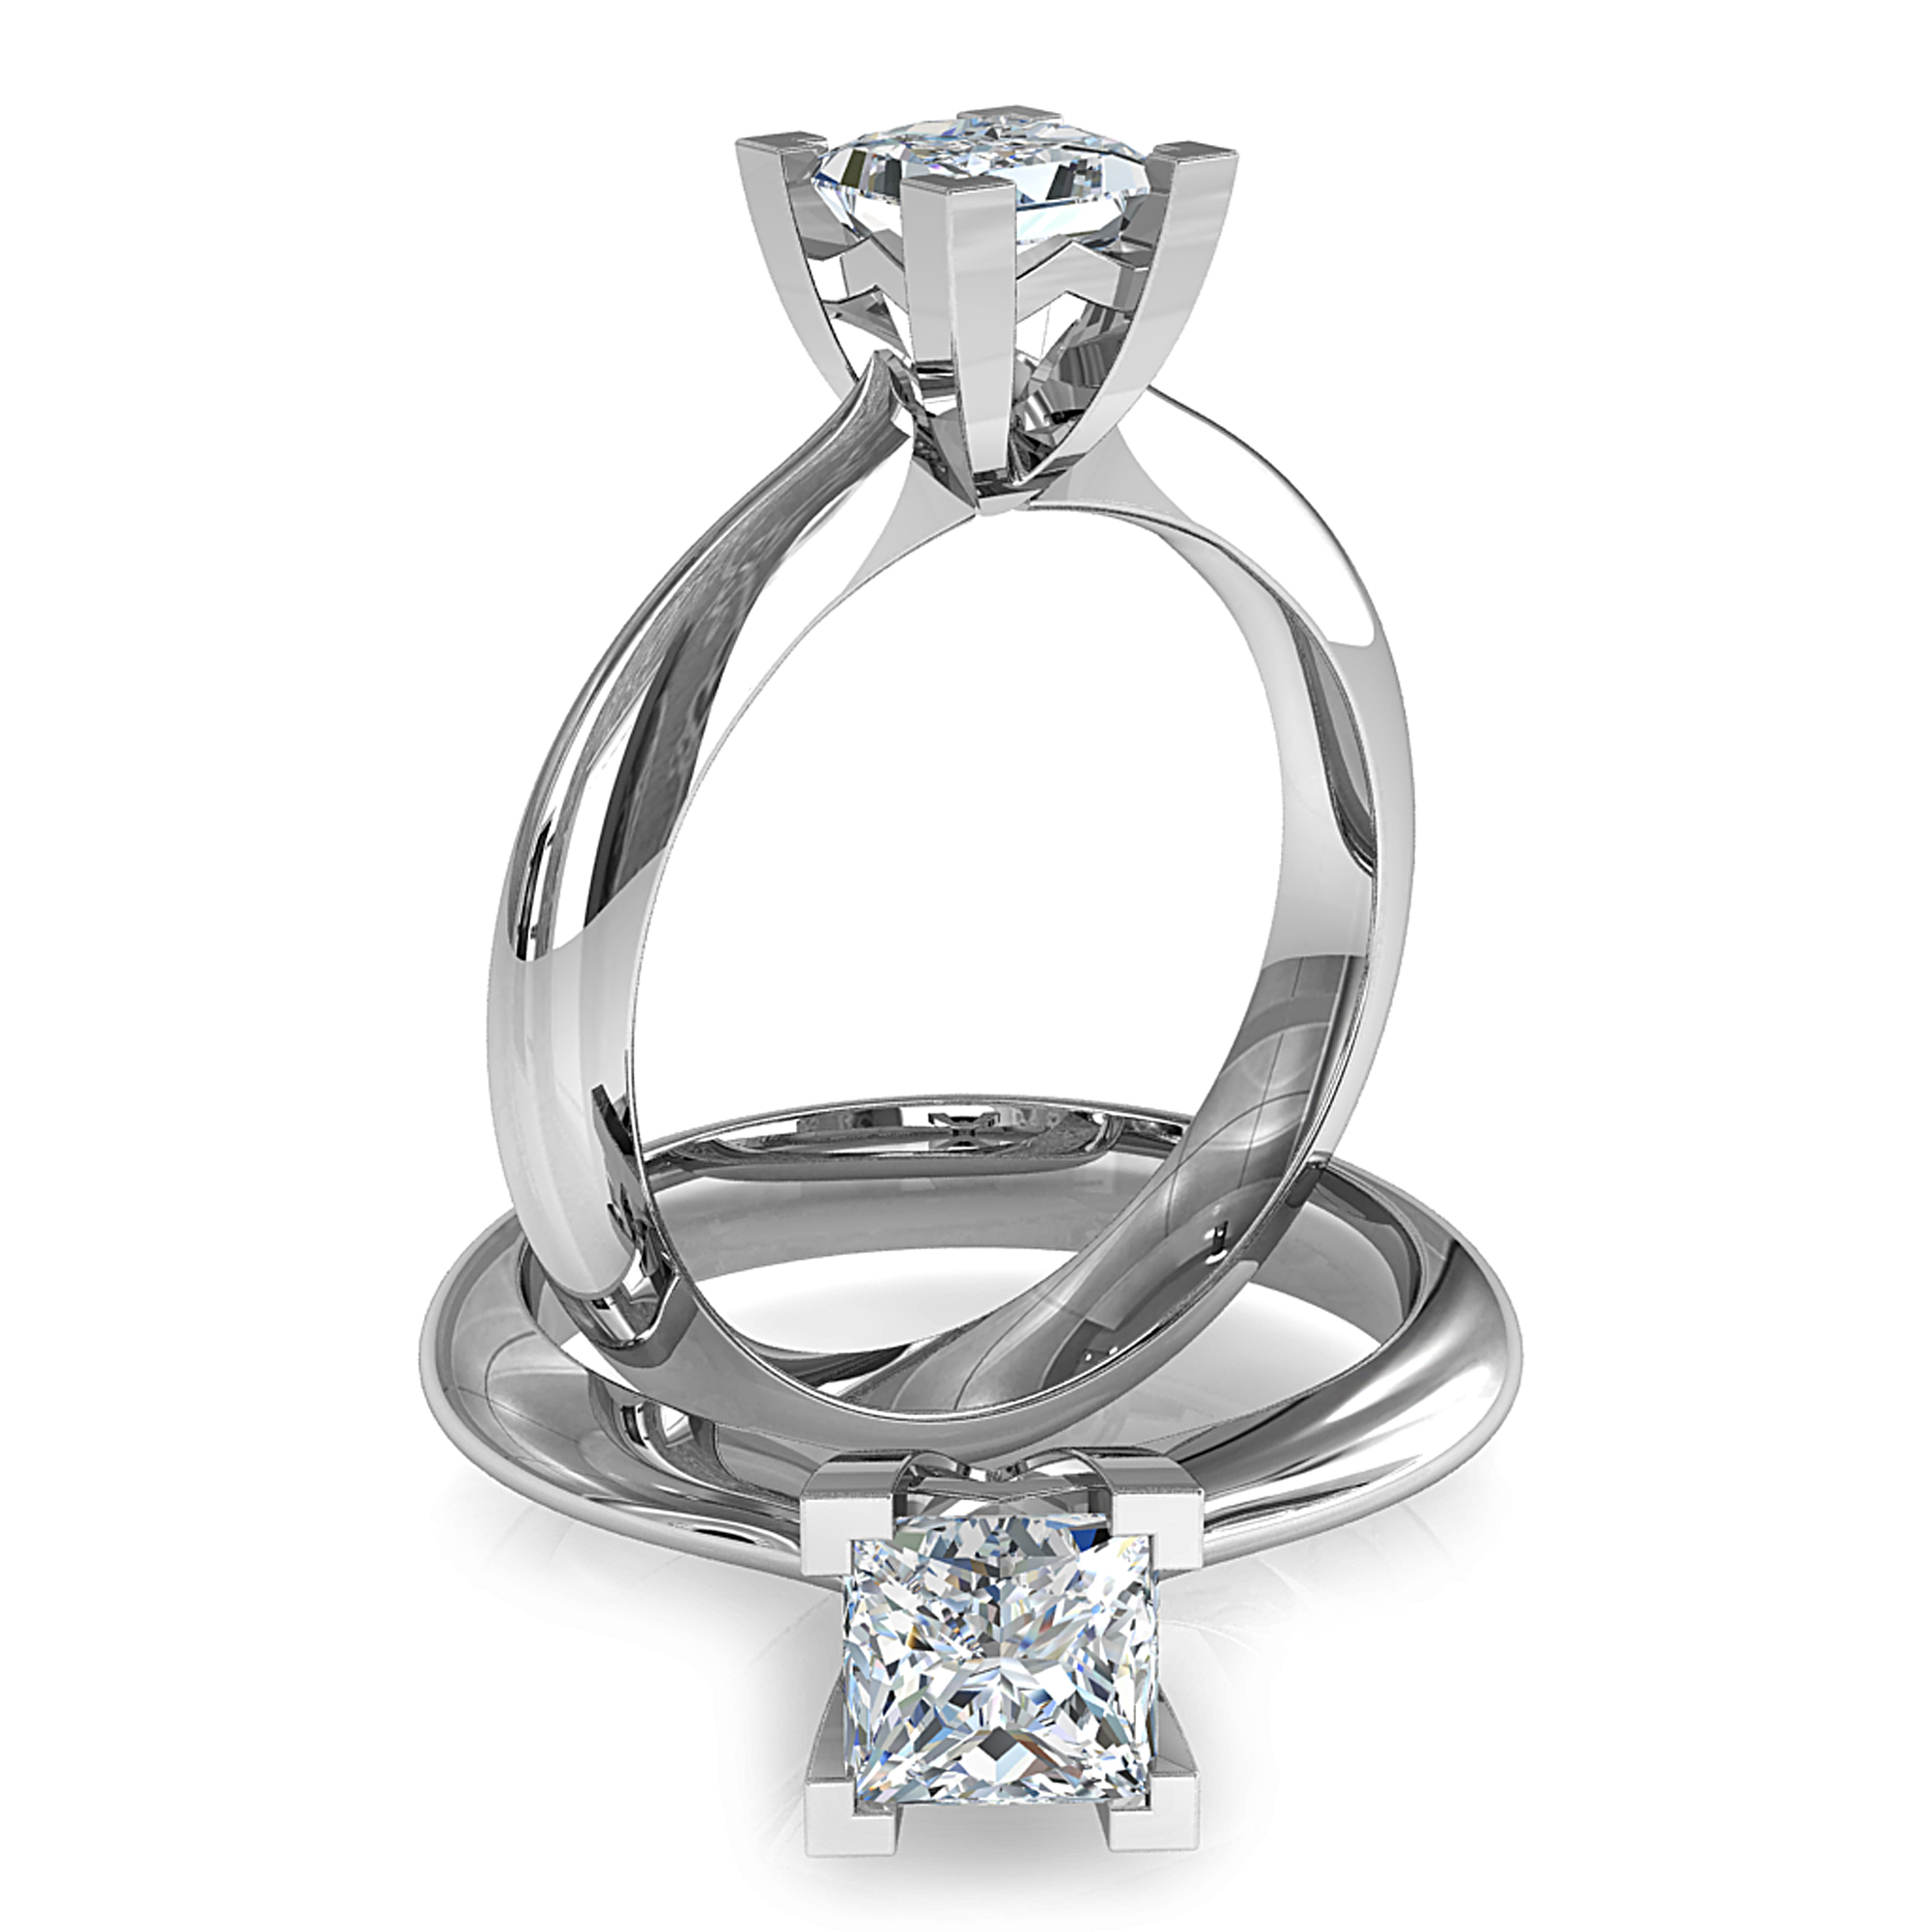 Princess Cut Solitaire Diamond Engagement Ring, 4 Corner Claws on a Tapered Round Band.